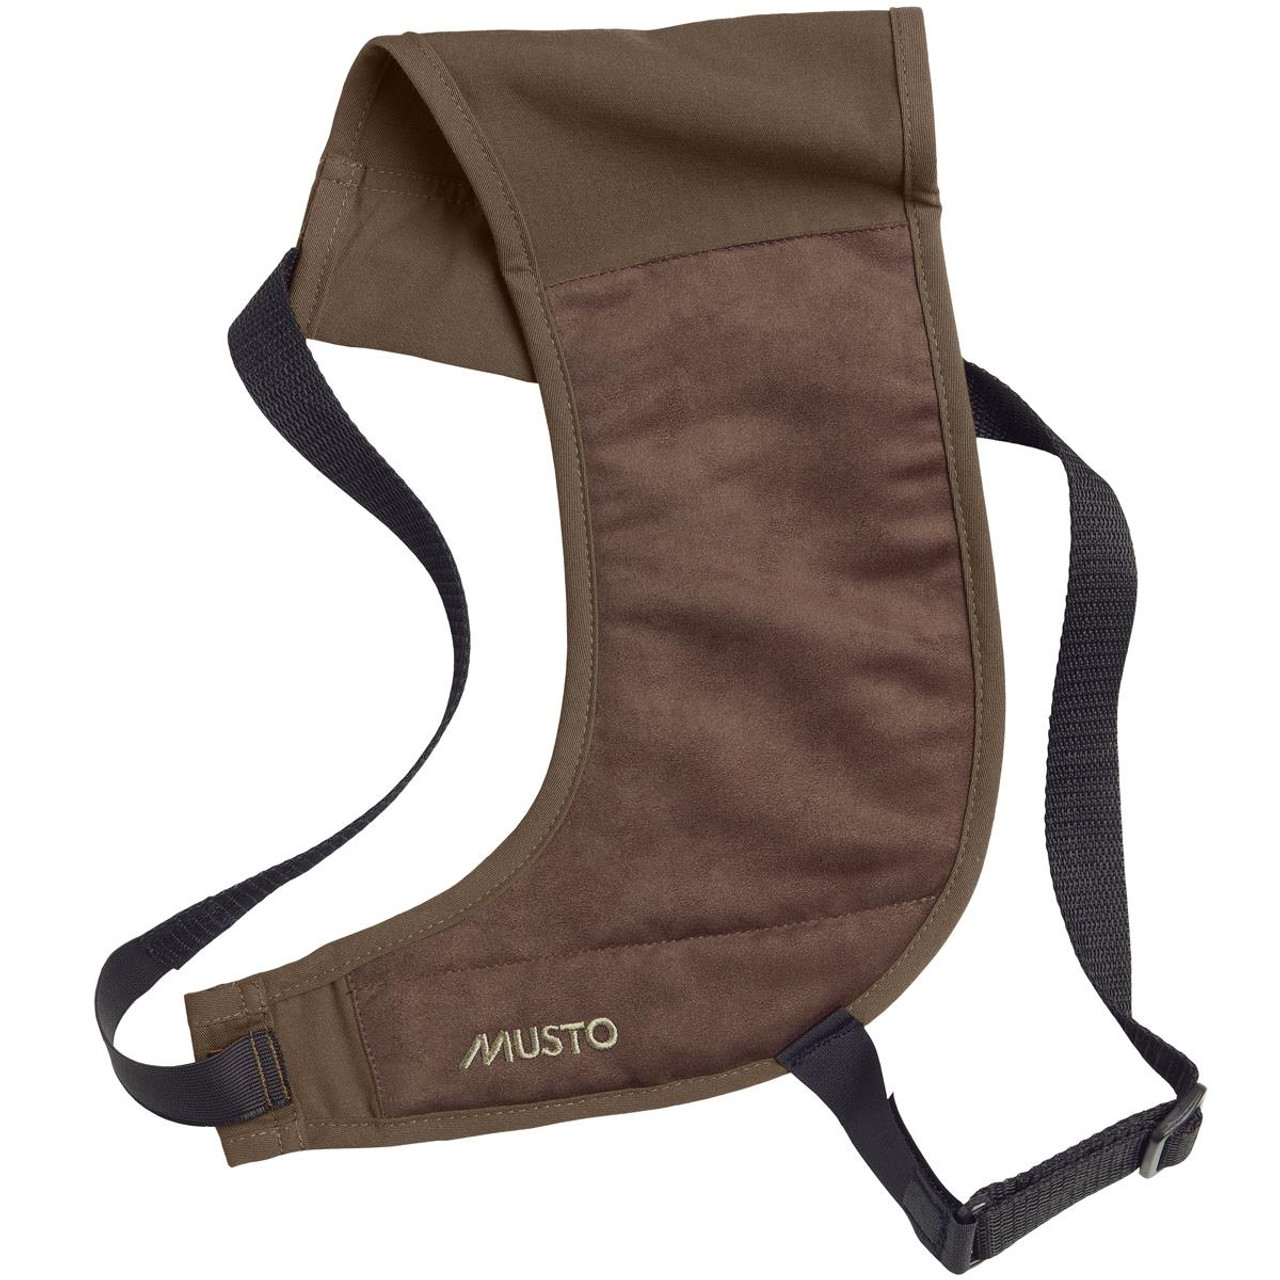 Musto D3O Recoil Shield